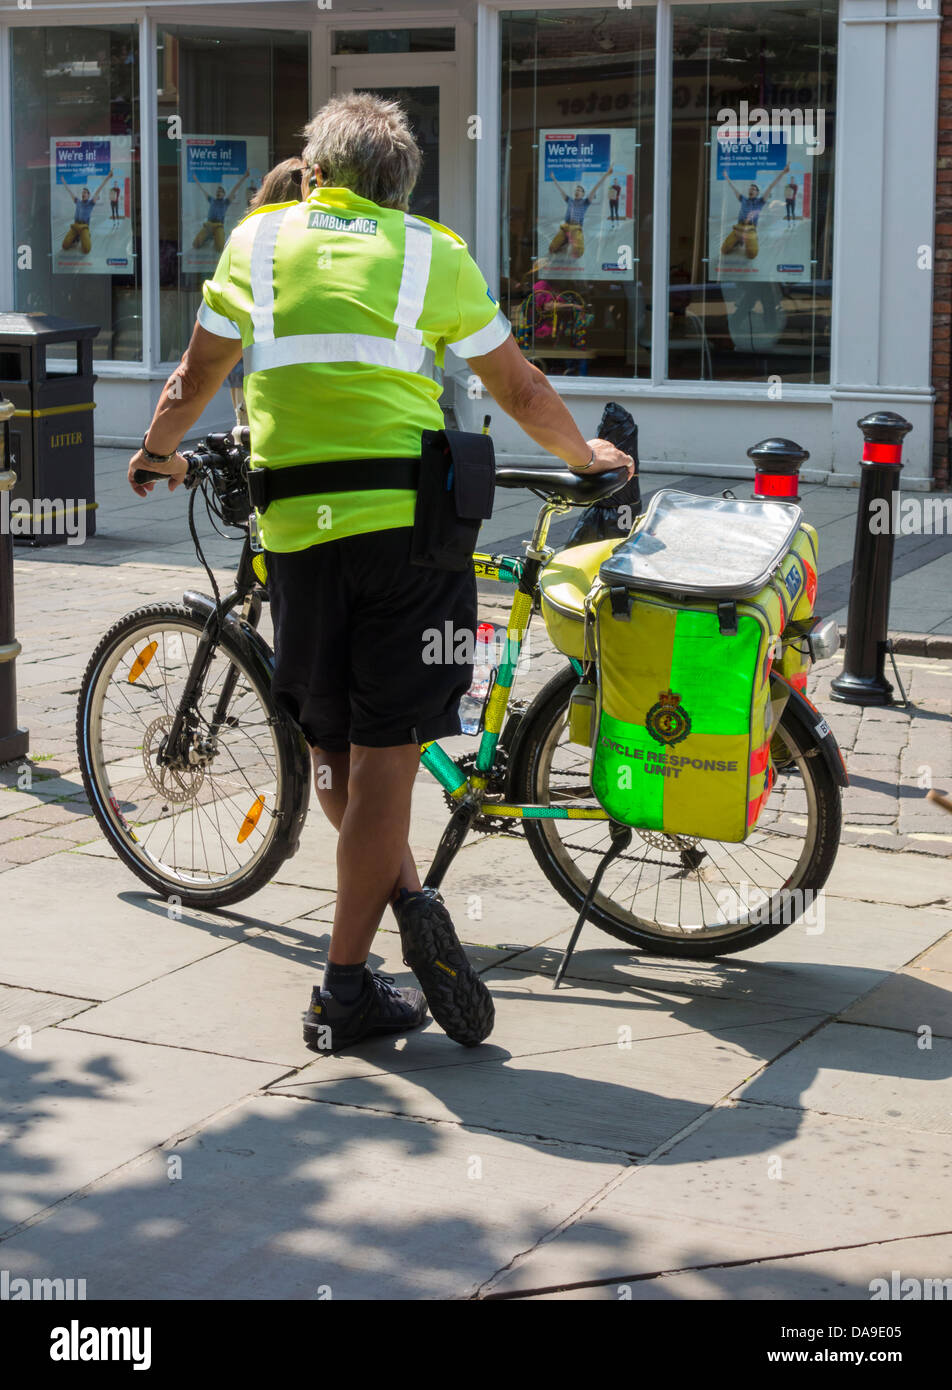 NHS Cycle Response Unit paramedic in York, England, UK - Stock Image